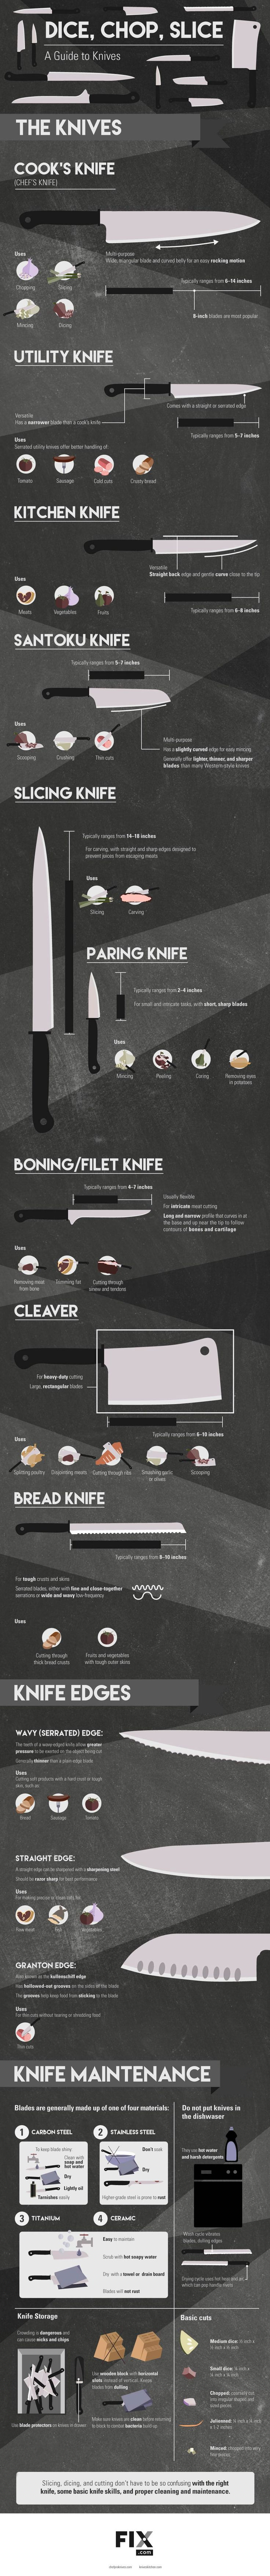 Kitchen Knife Guide- how to pick the correct knife for the job, take proper care to ensure longevity and practice knife safety | www.savoryexperiments.com